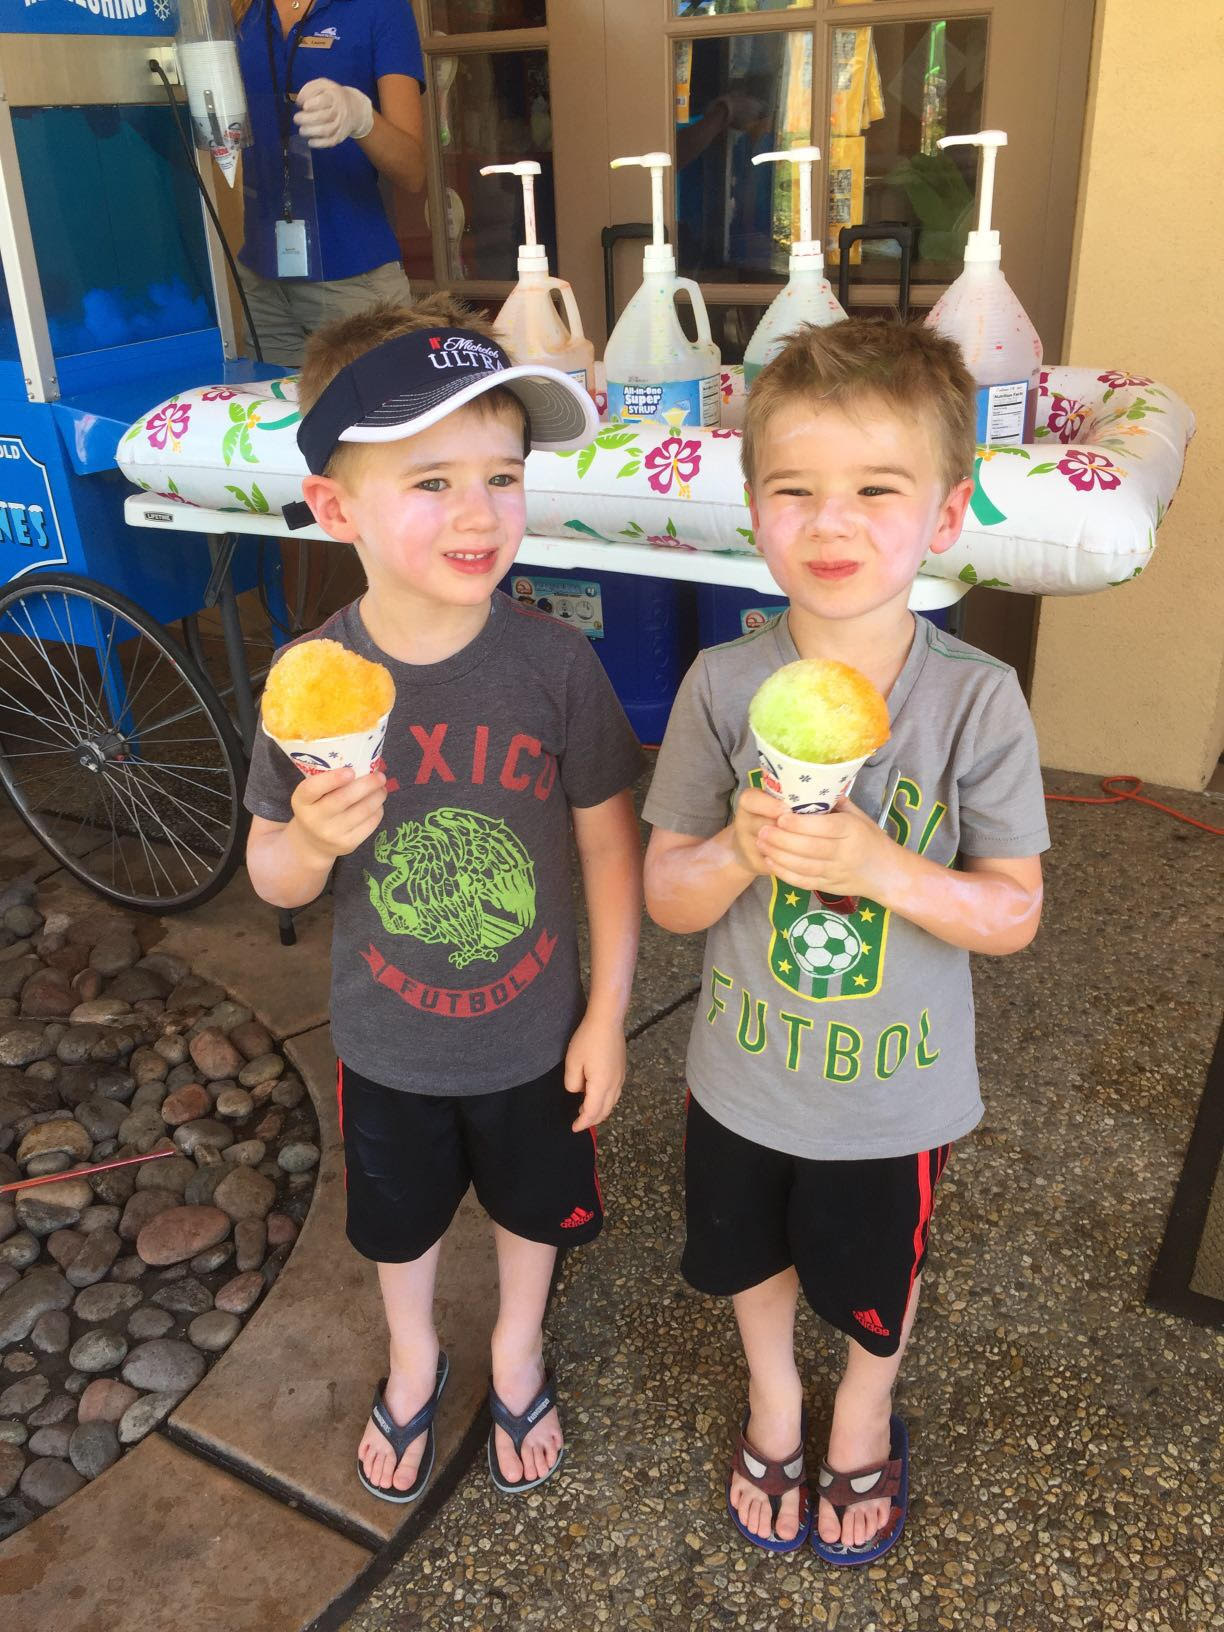 Twins snow cones fam week 2016 - Copy